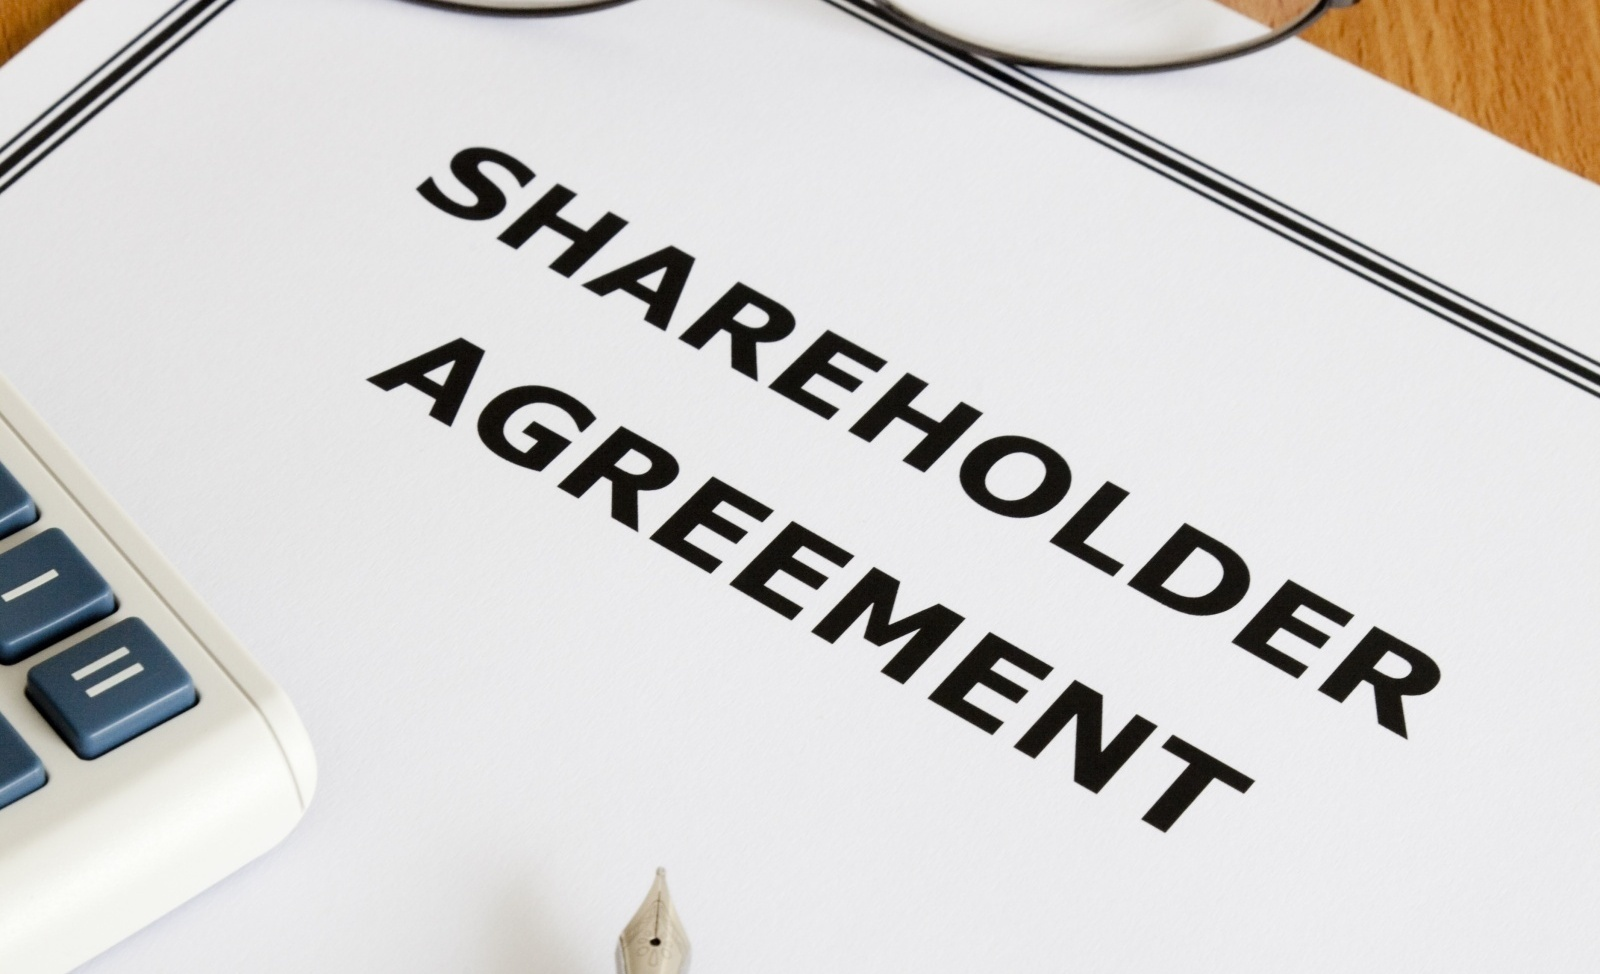 endeavorlegal-shareholder-agreement1